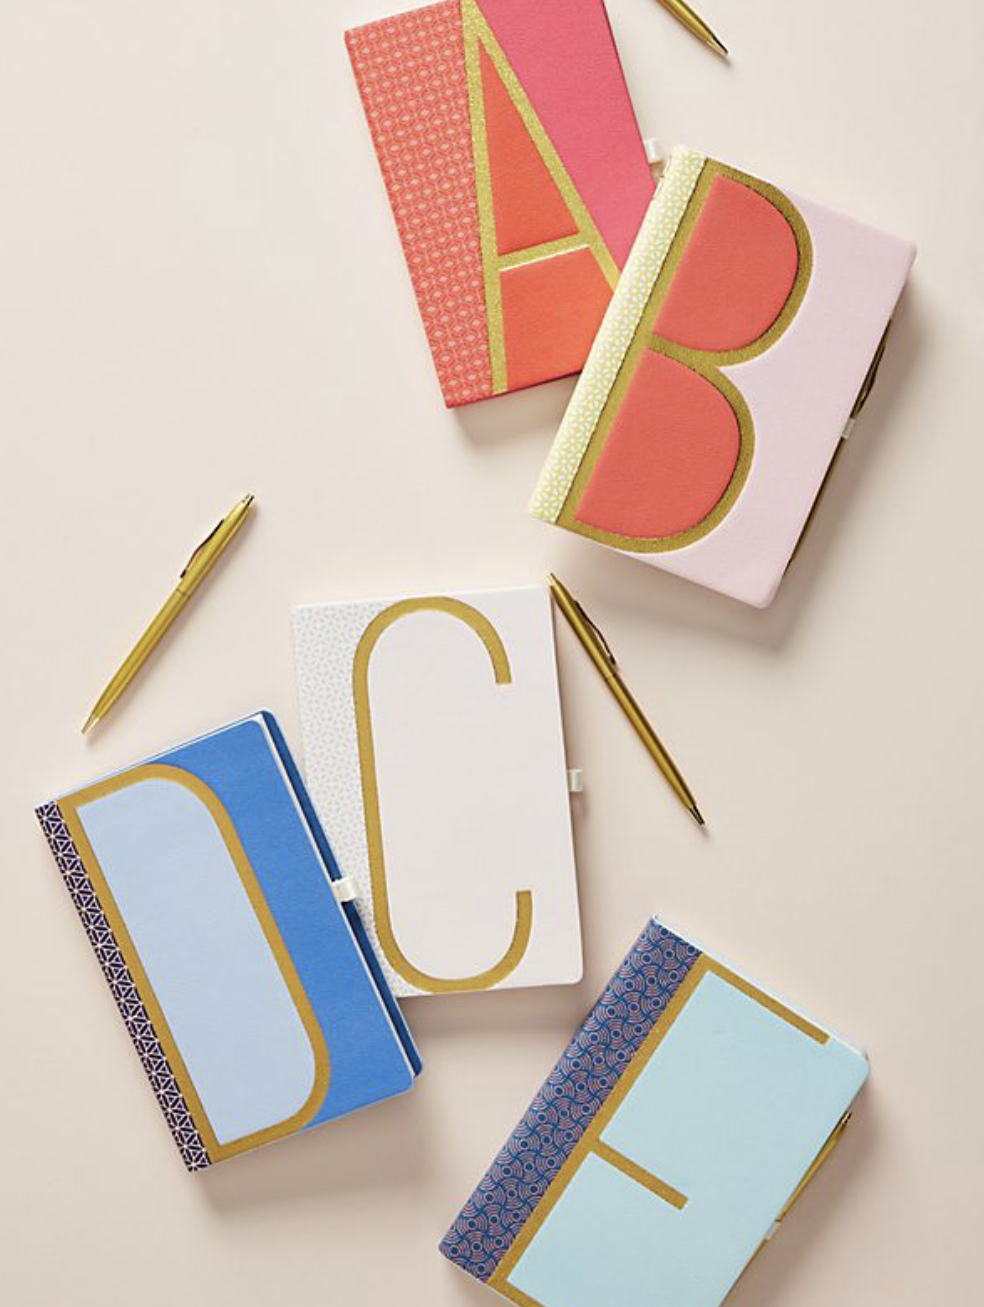 Anthropology Journal - Who doesn't love something monogramed? $18